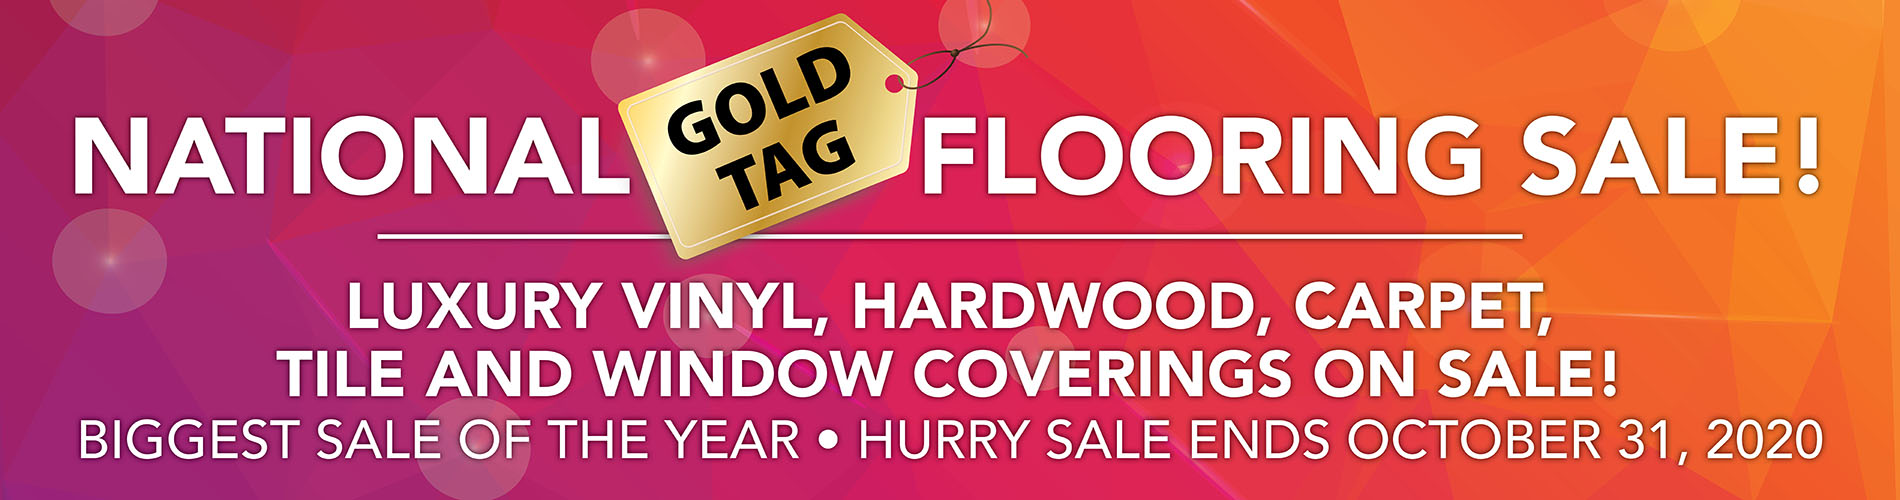 National Gold Tag Sale. Luxury vinyl, hardwood, carpet, tile and window coverings on sale! Biggest sale of the year. Hurry Sale ends October 31, 2020